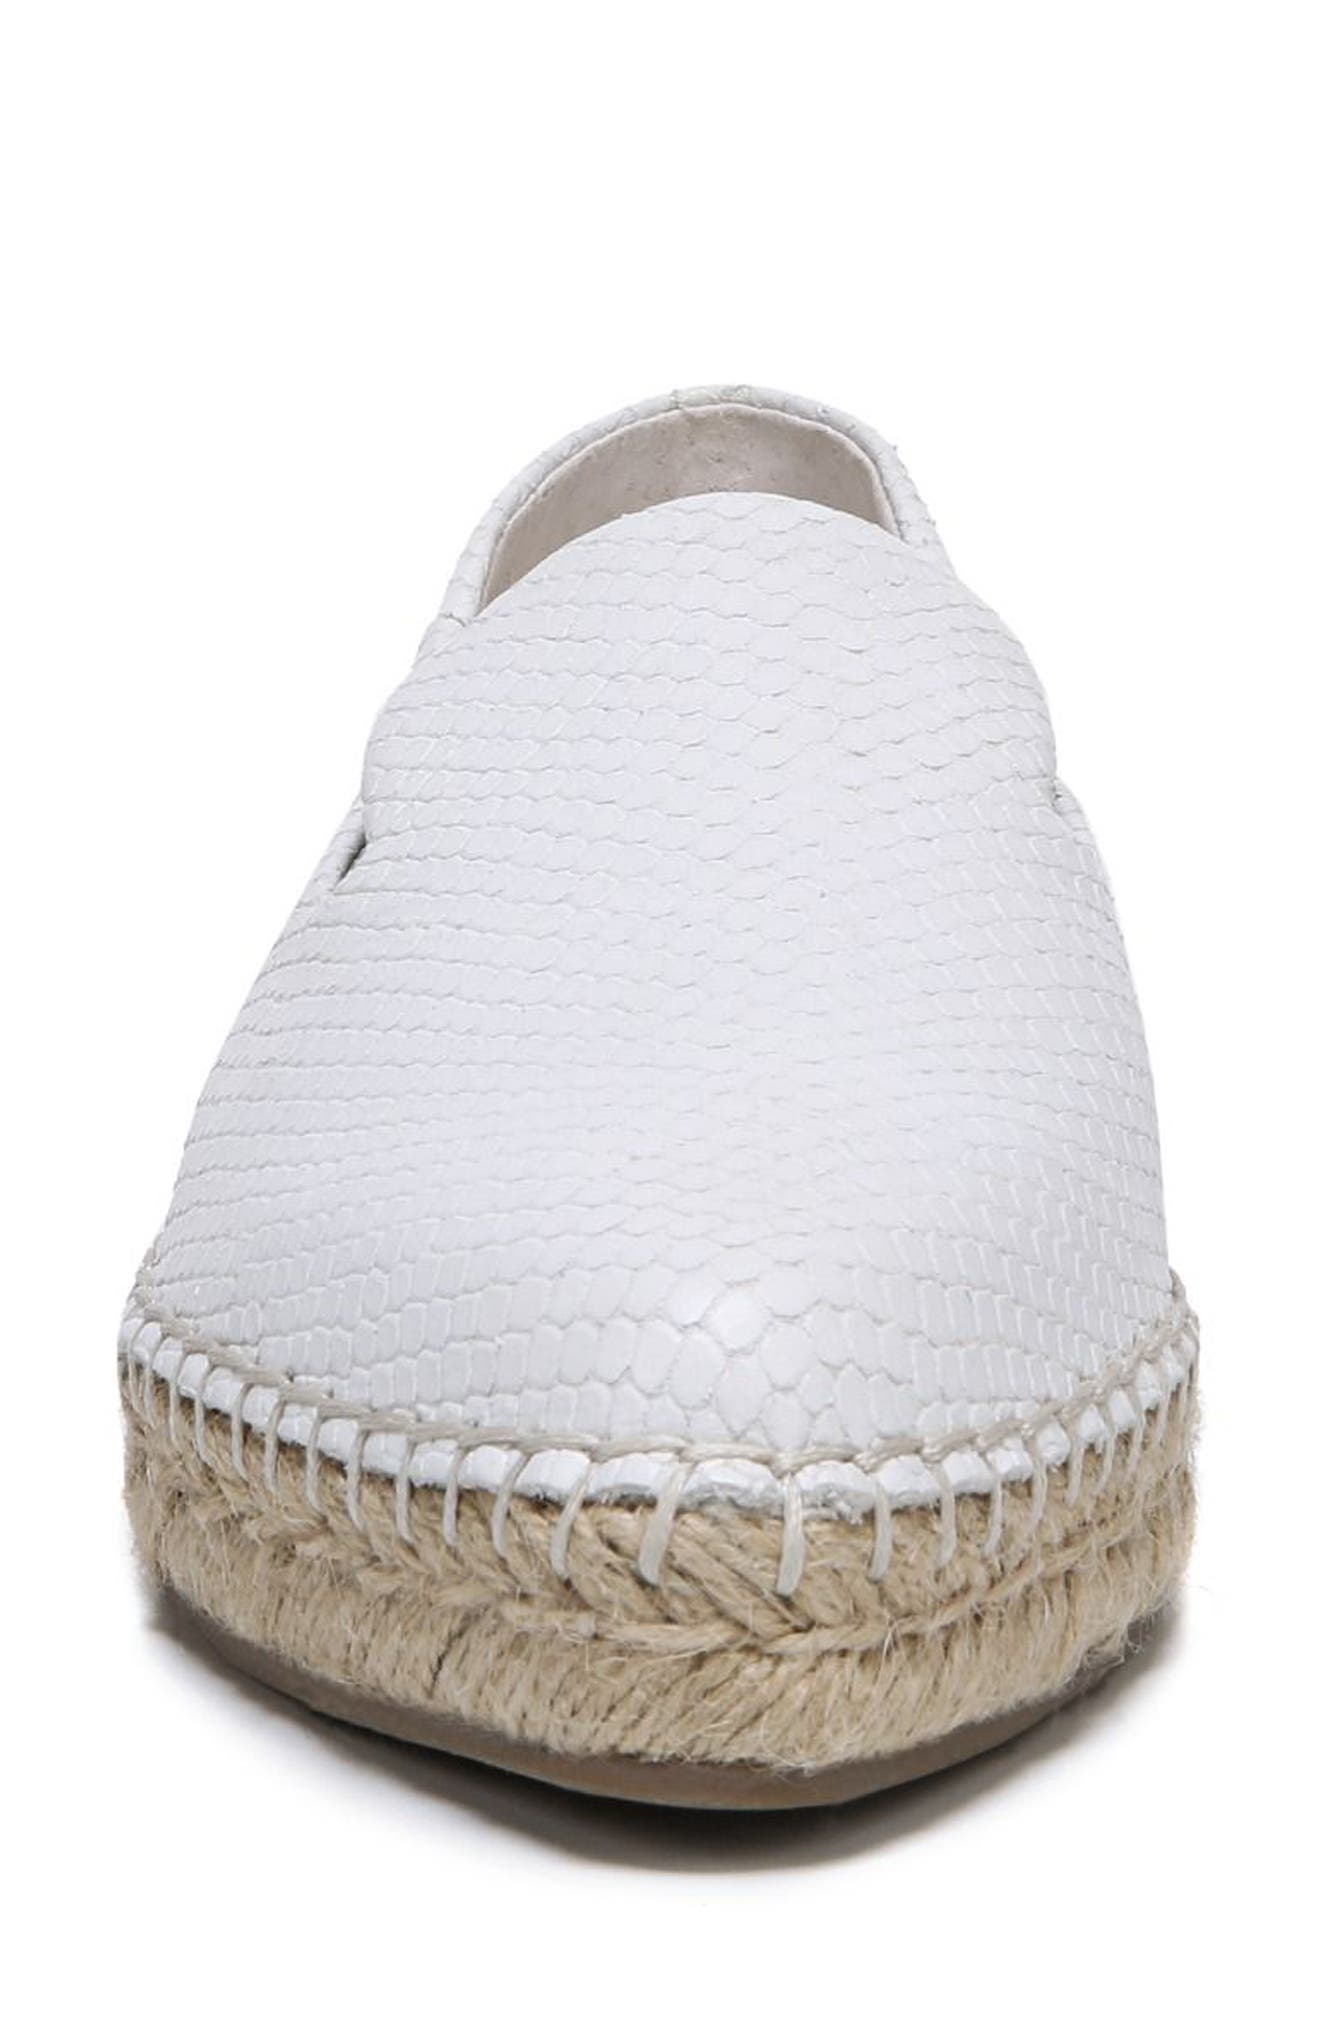 Eviana Espadrille Loafer,                             Alternate thumbnail 4, color,                             Blanca Snake Print Leather